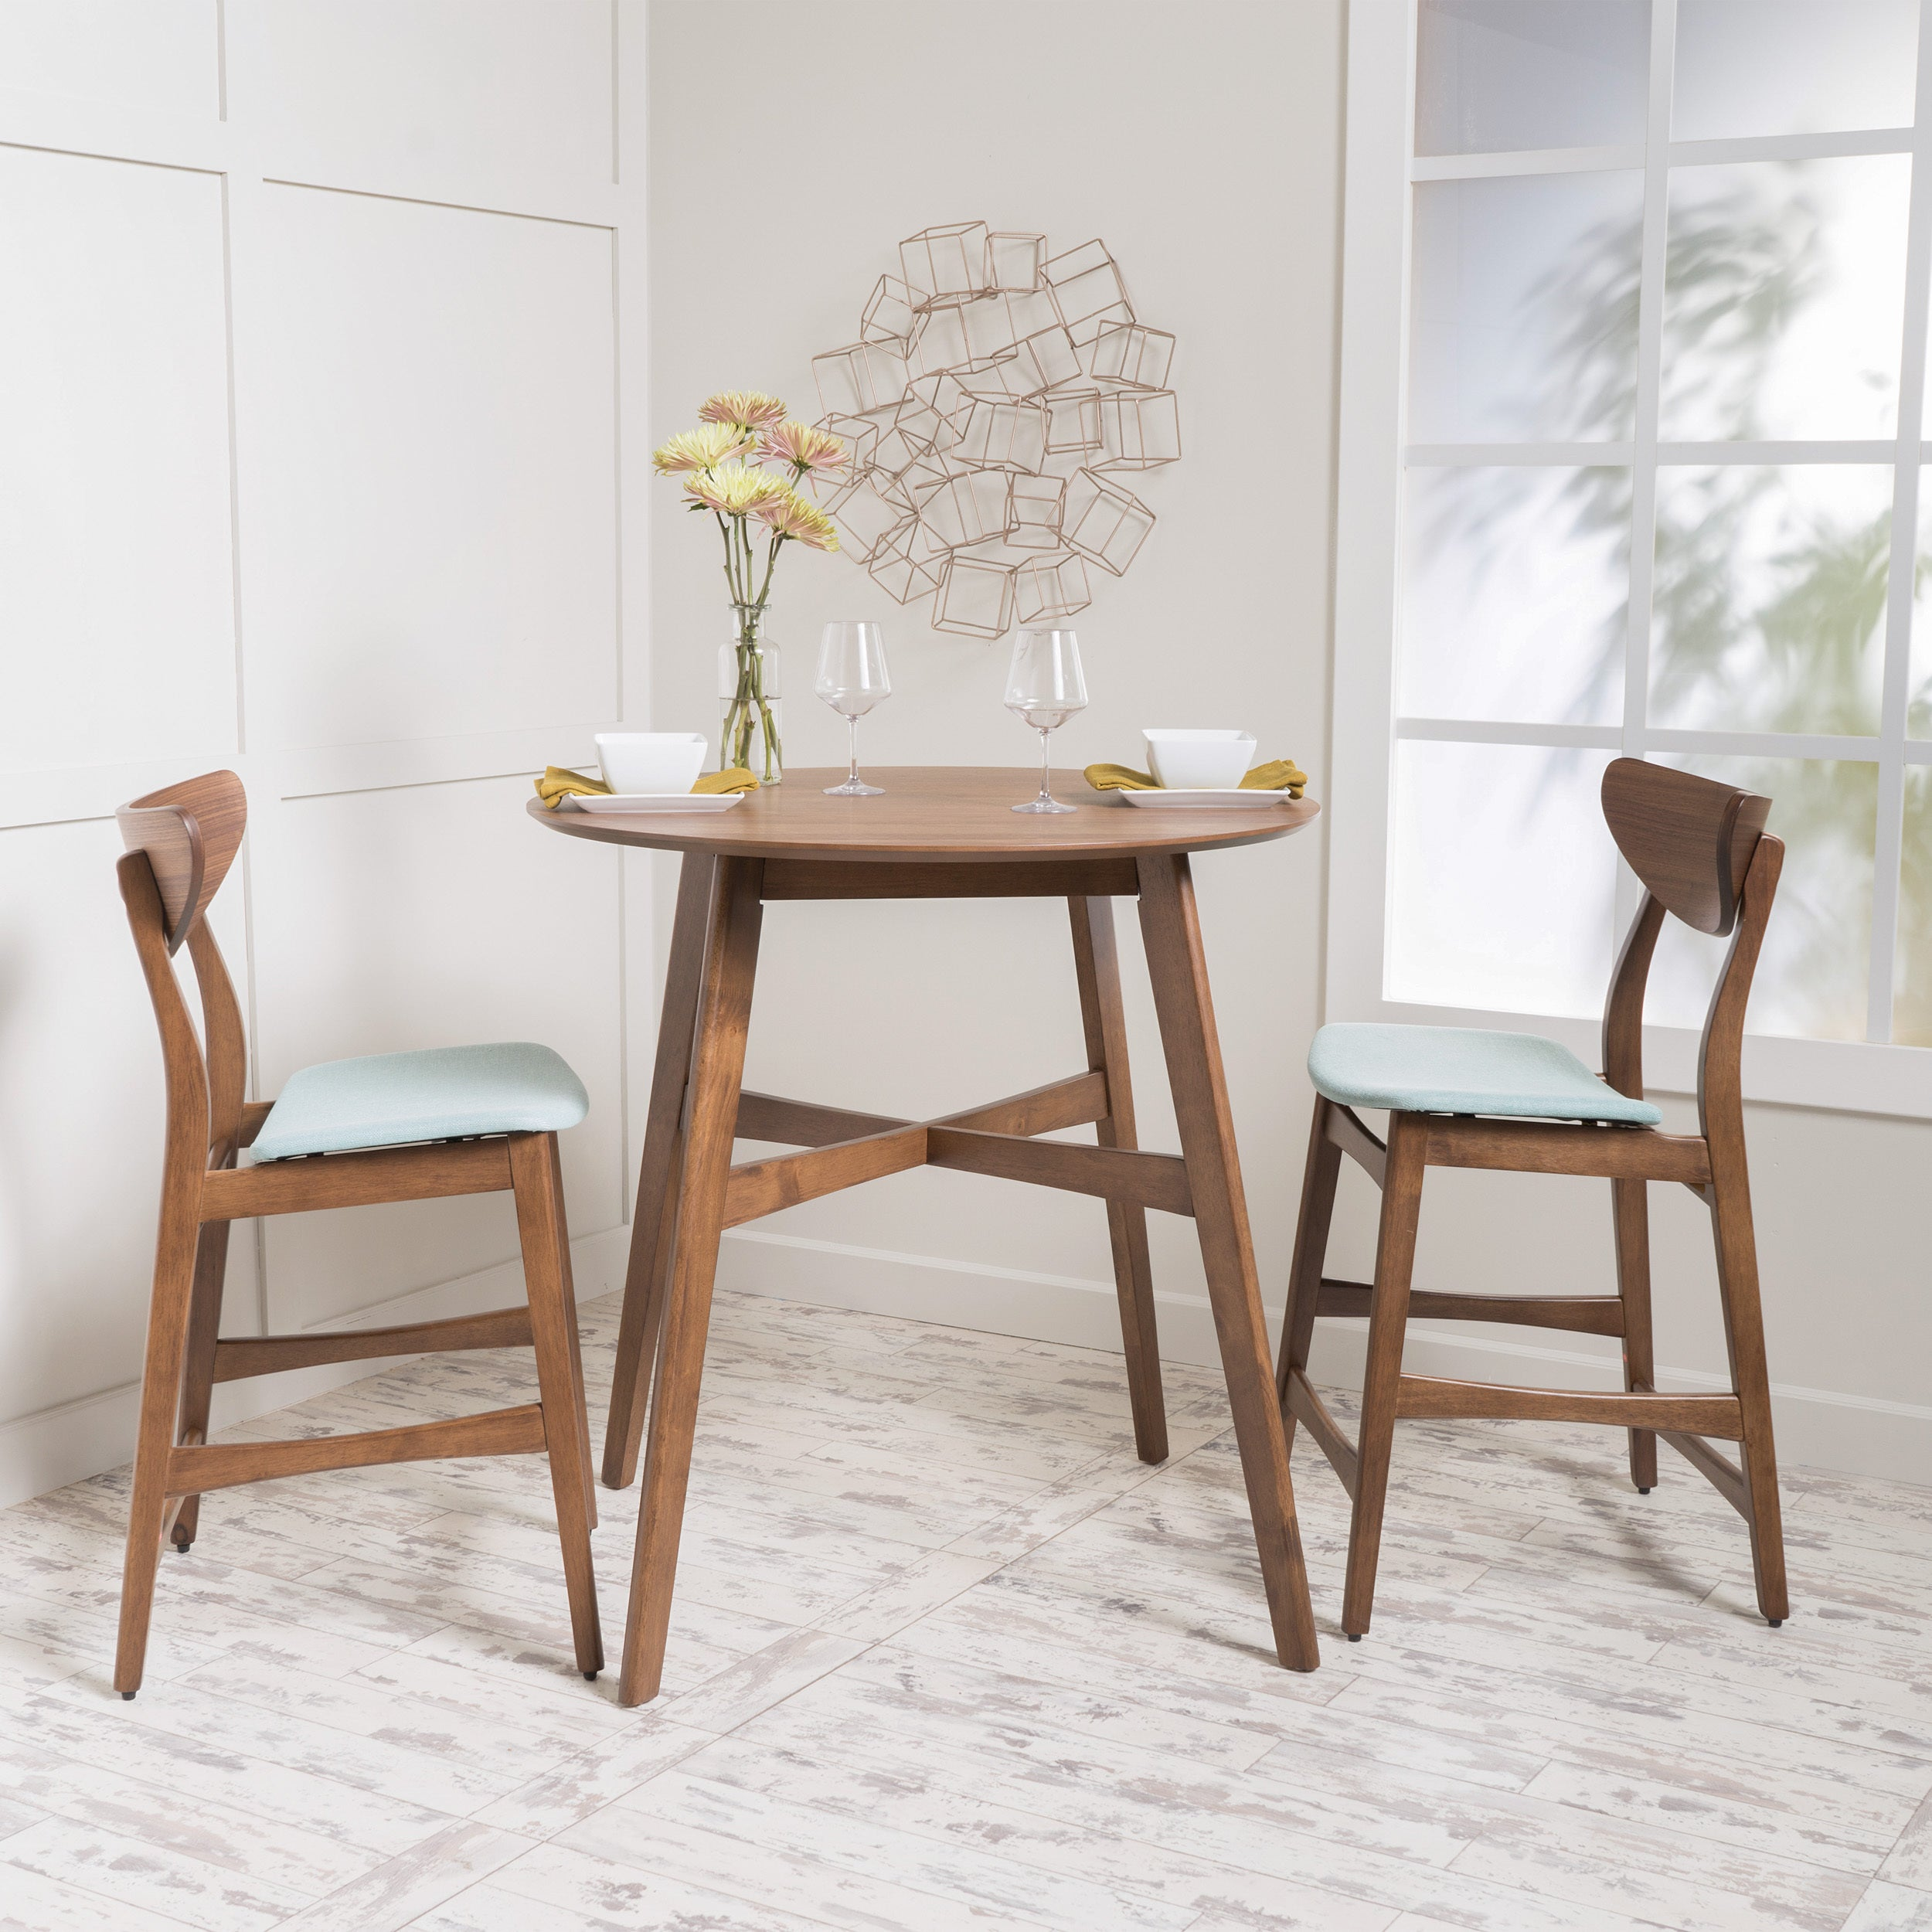 Carson Carrington Lund 3-piece Wood Counter-height Round Dining Set & Buy Bar u0026 Pub Table Sets Online at Overstock.com | Our Best Dining ...